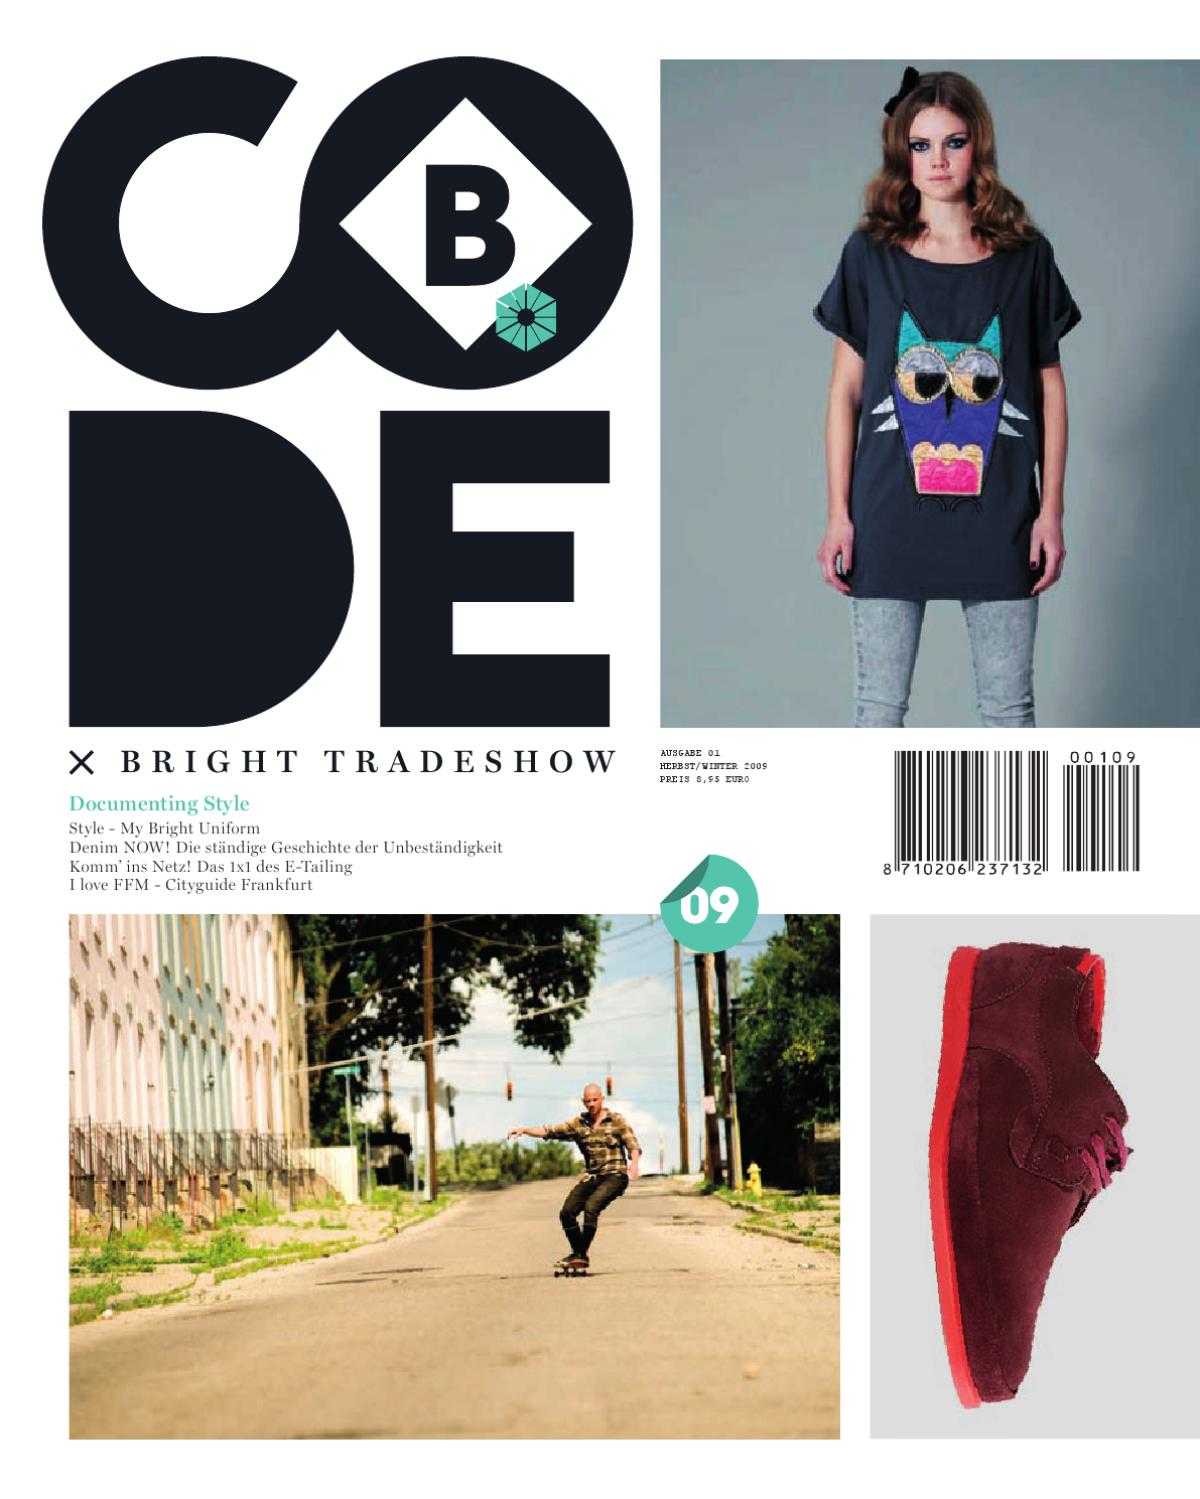 CODE Supertroopers CV by issuu xBright shdrCoQtxB